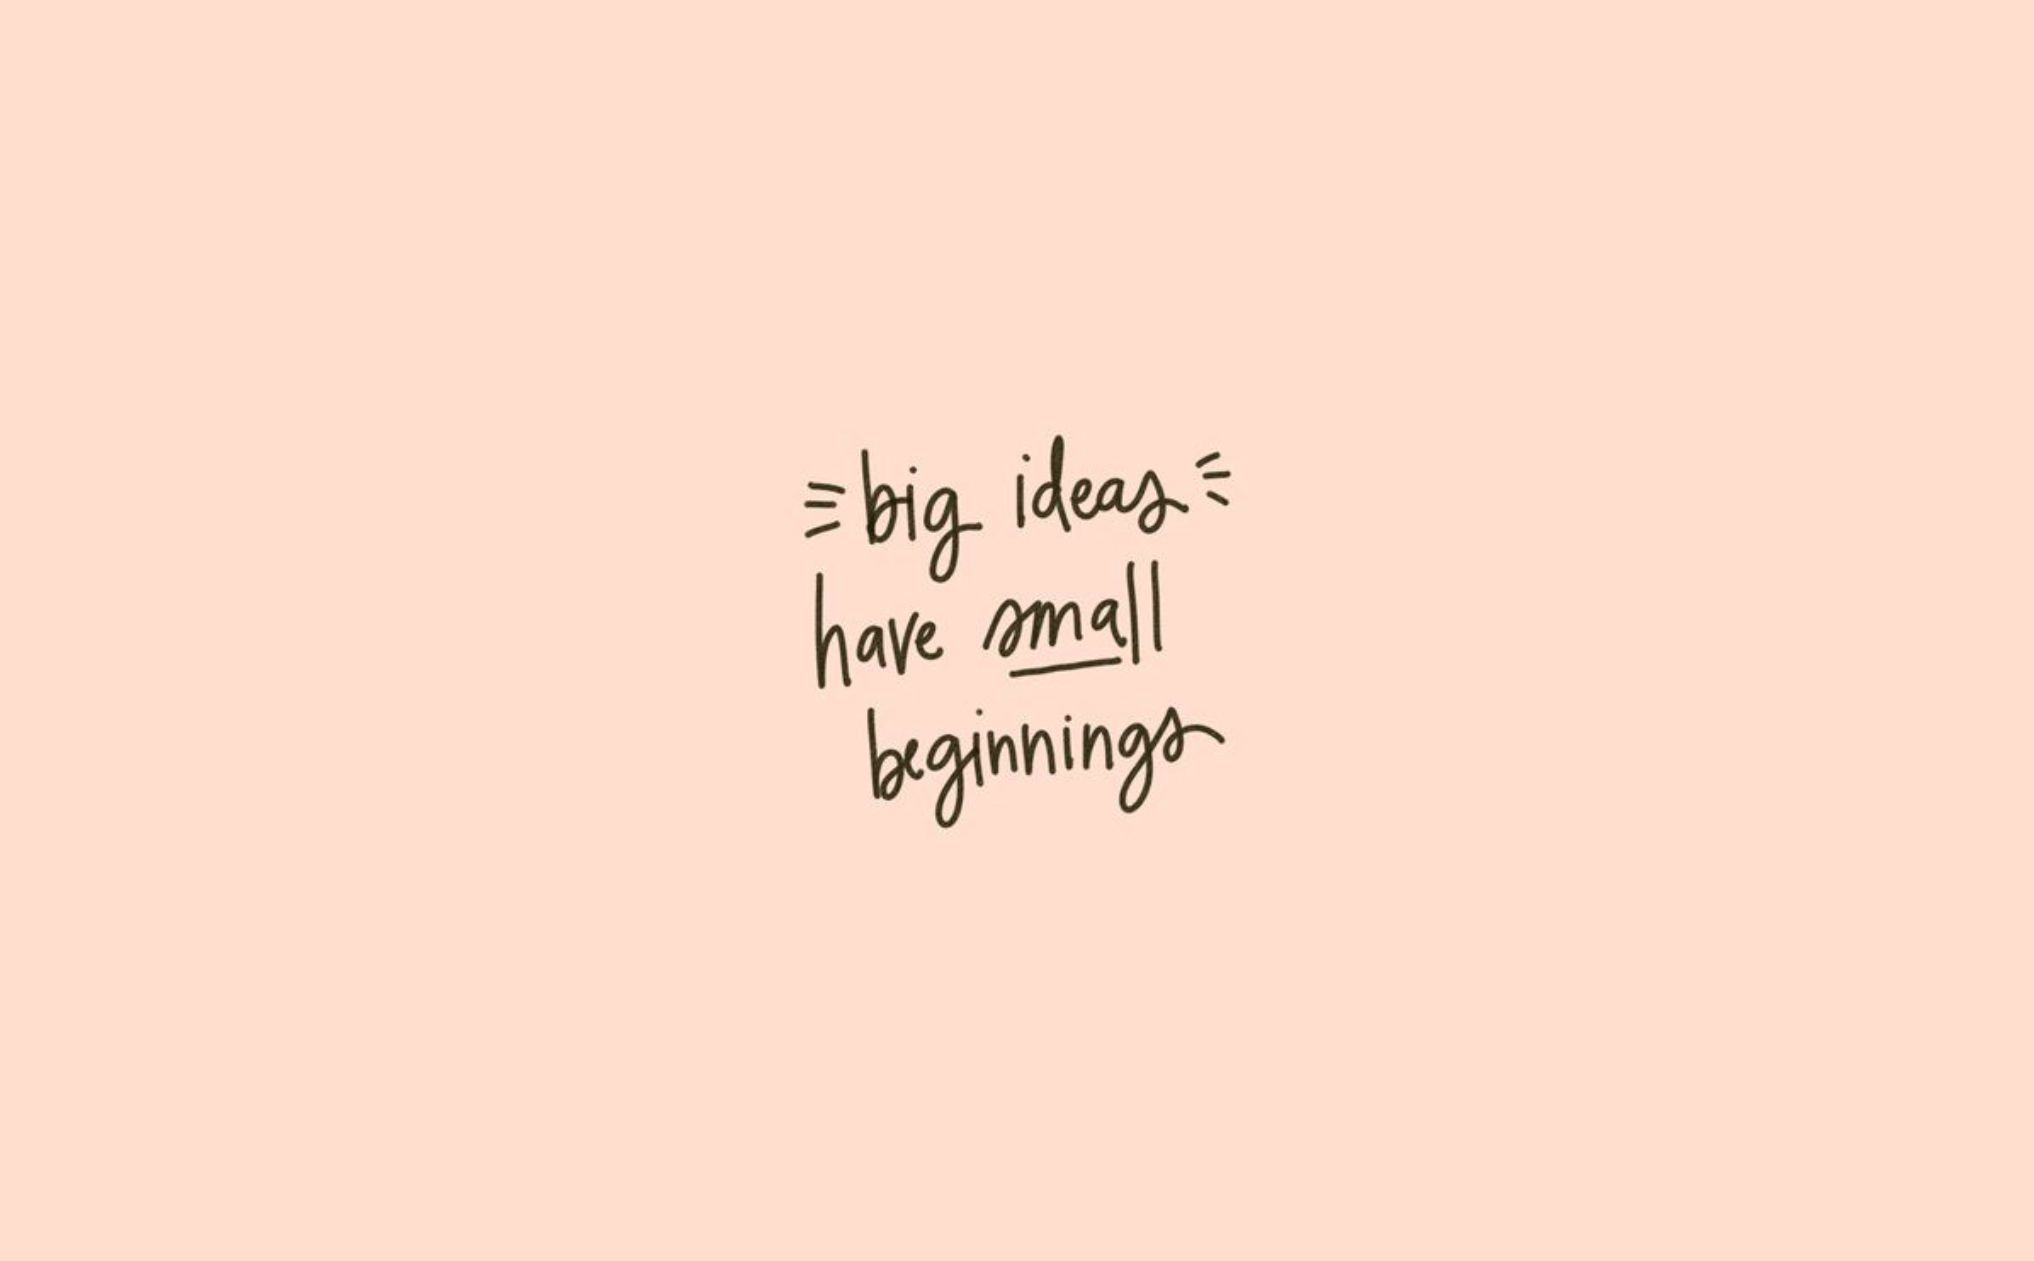 Desktop Wallpaper Tumblr Big Ideas Have Small Beginnings Alexia Beau Cute Desktop Wallpaper Laptop Wallpaper Quotes Desktop Wallpaper Motivational